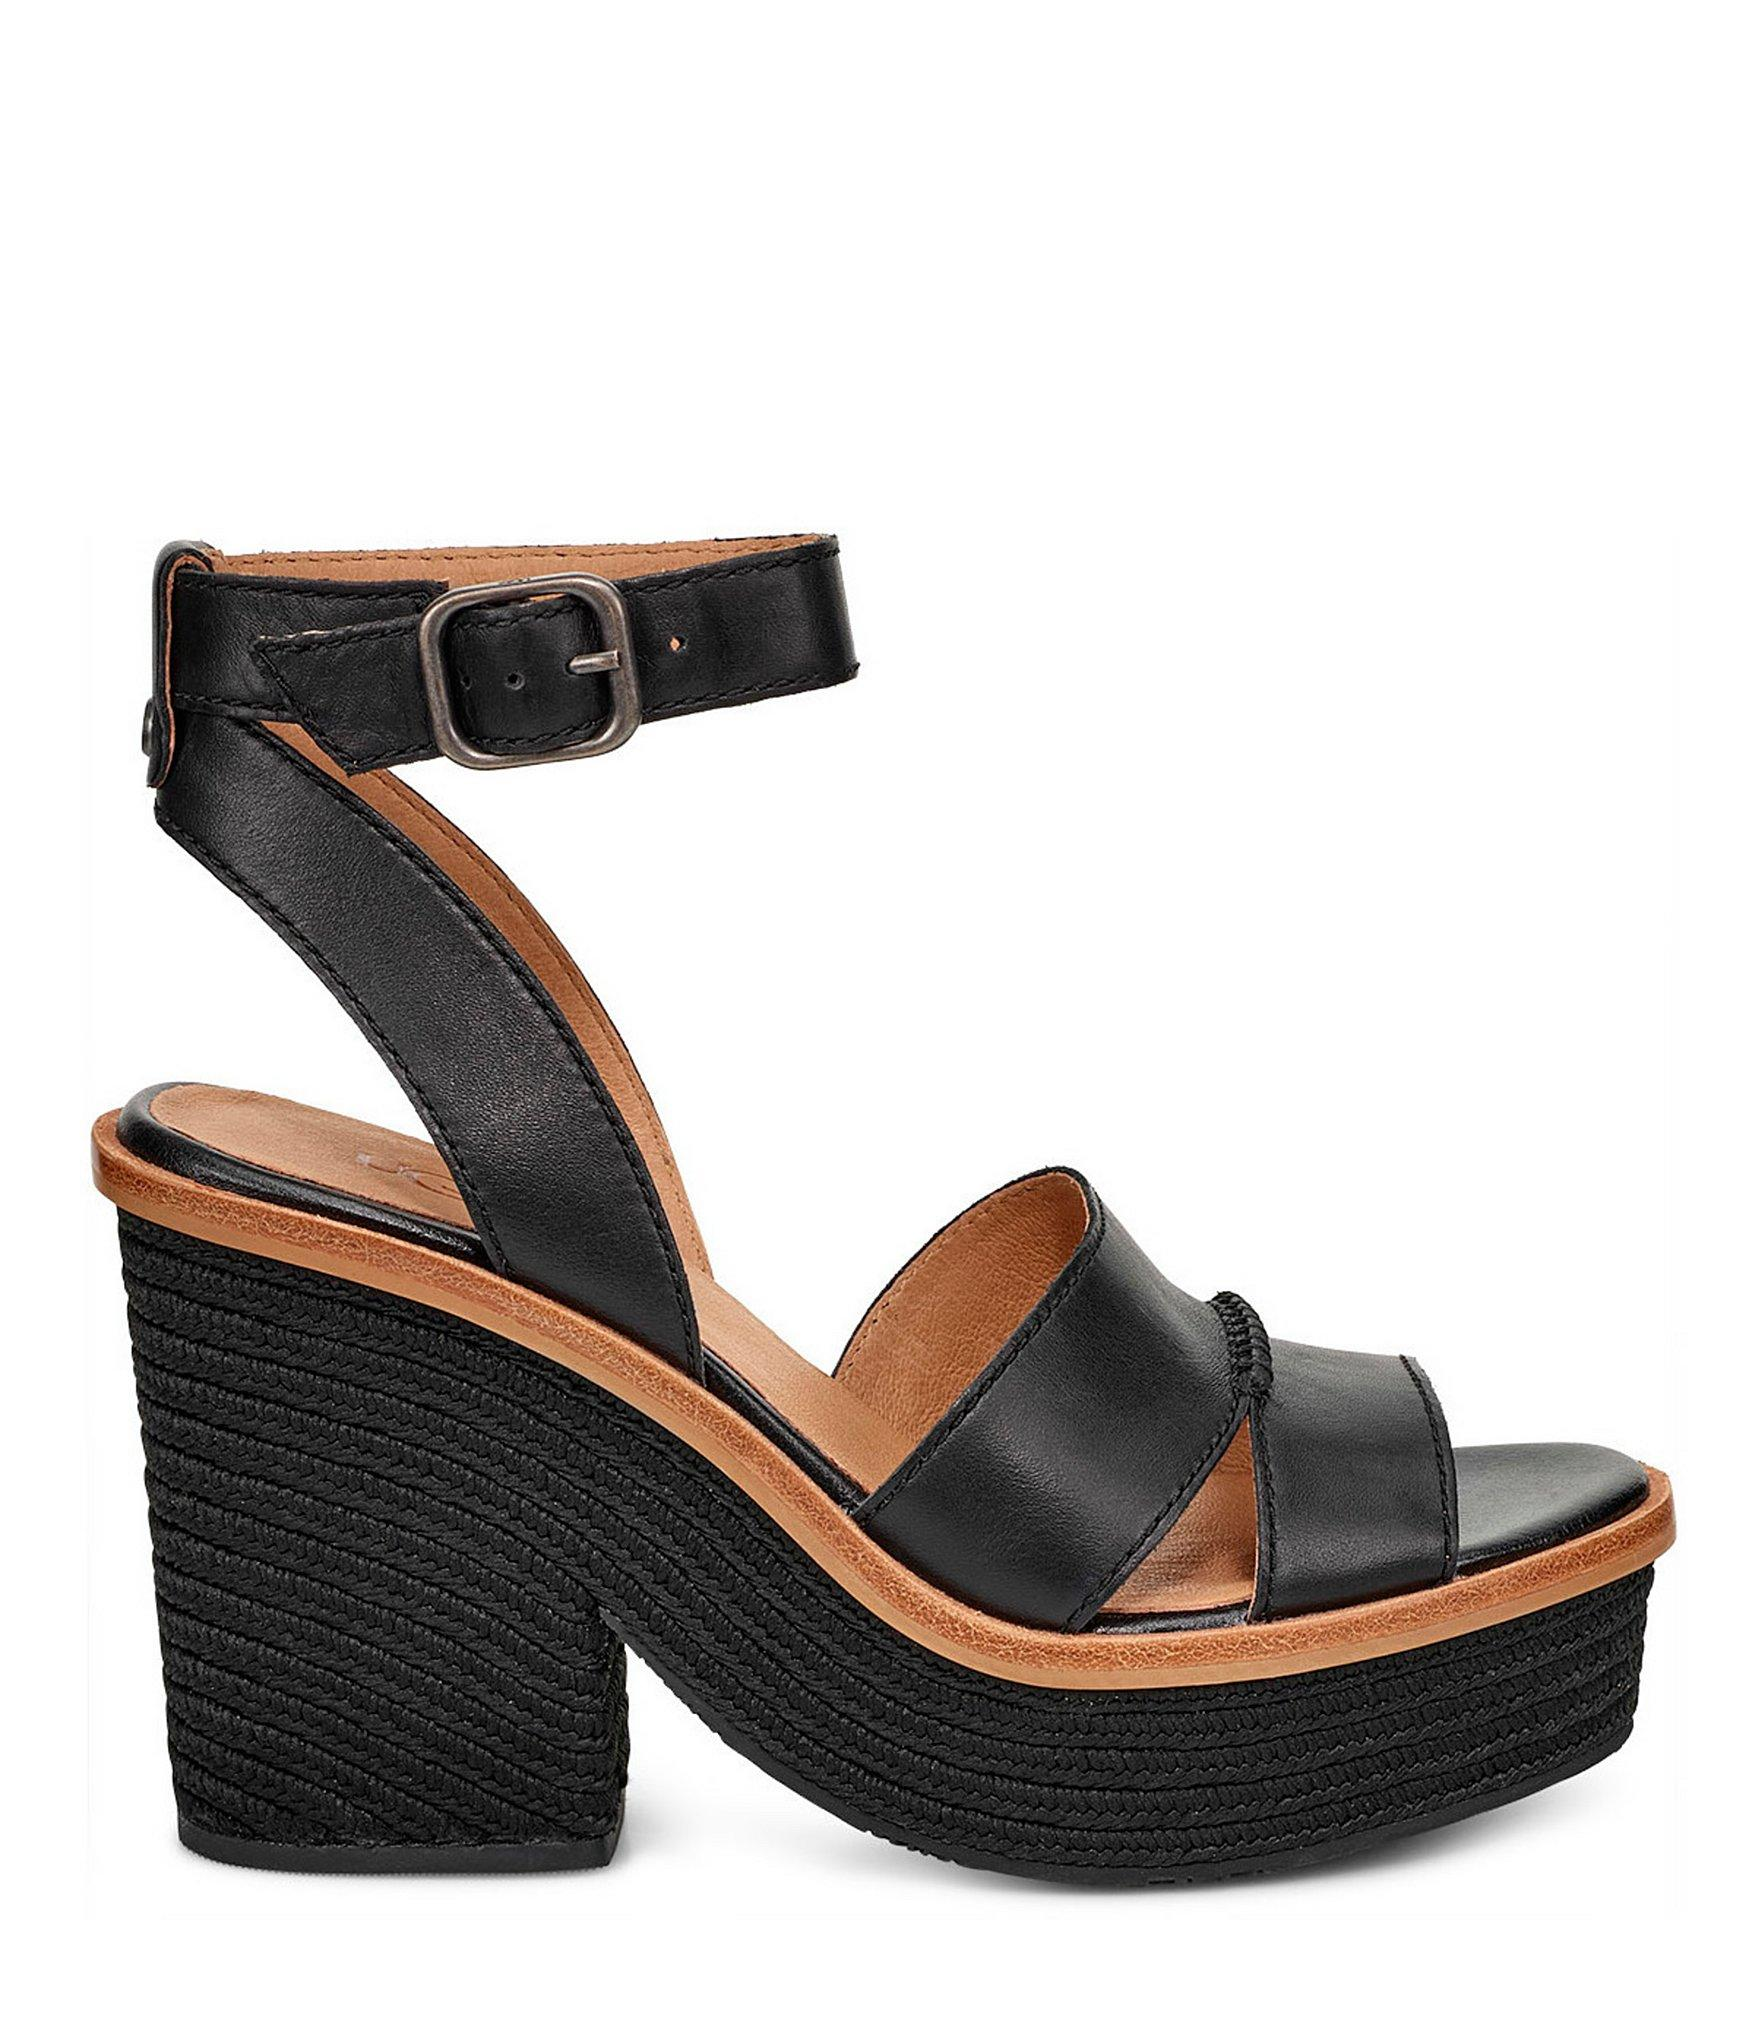 49398f49025 Women's Black Carine Banded Leather Sandals